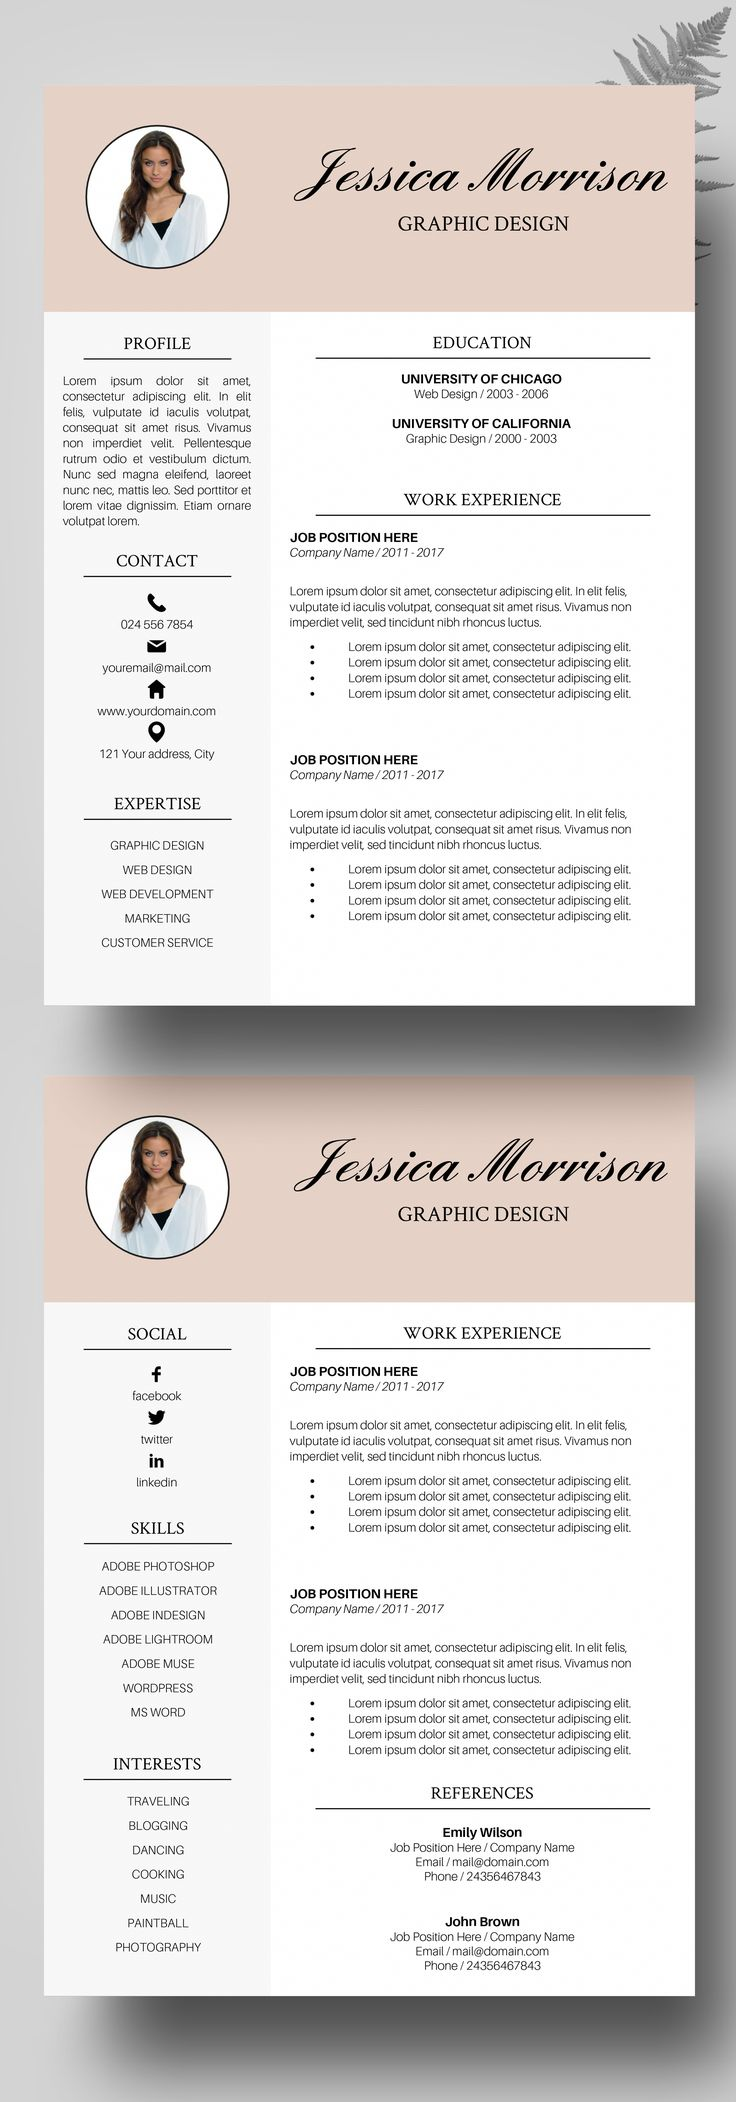 resume template cv template for ms word resume modern professional resume creative - Creative Resume Templates Free Word